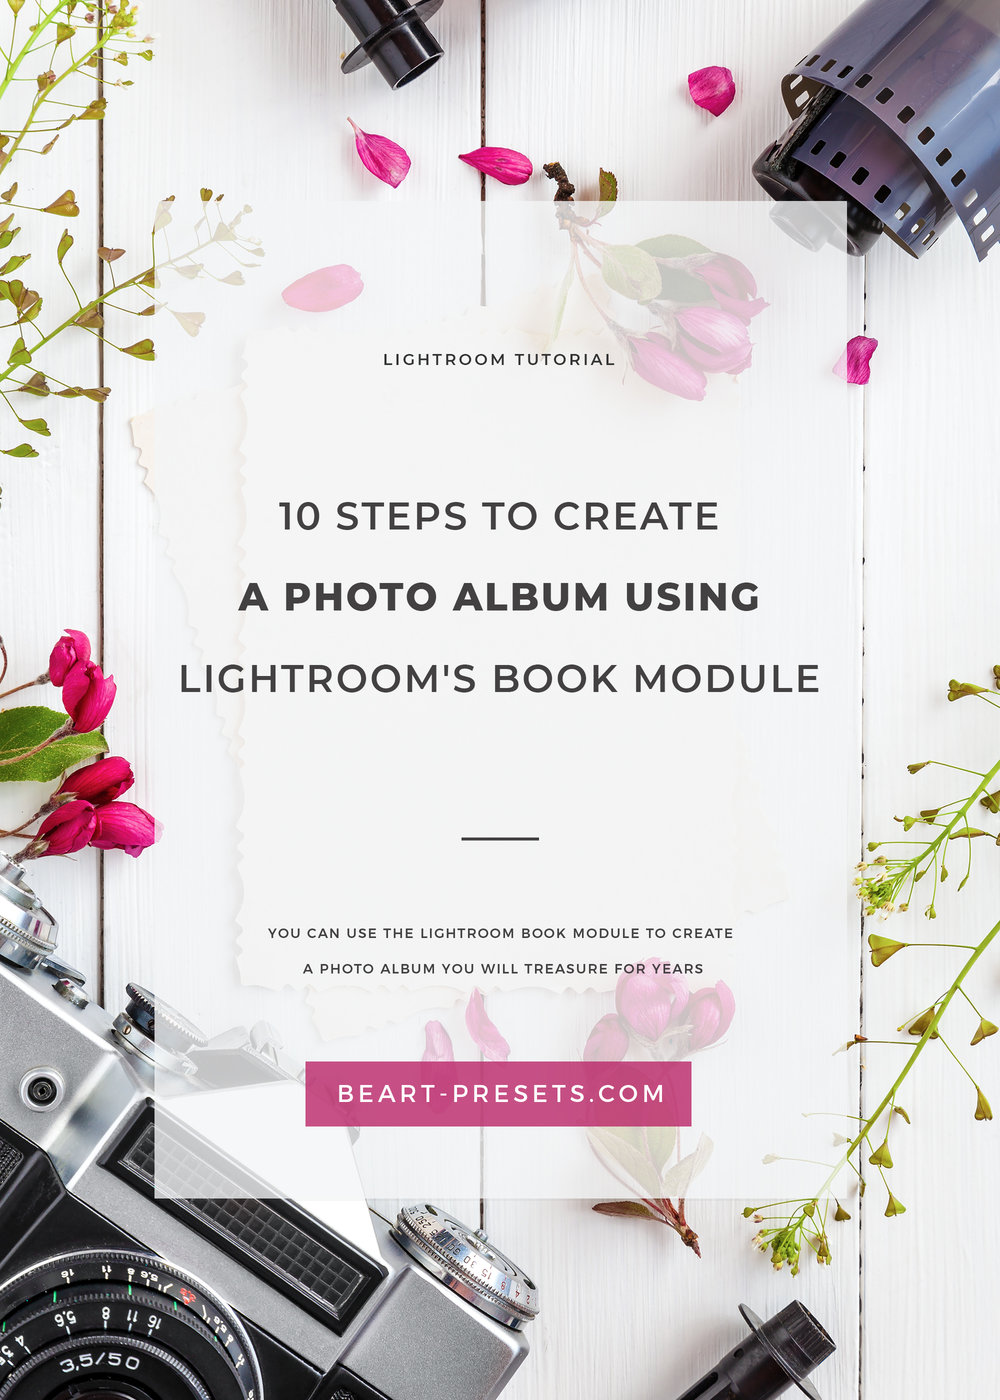 CREATE A PHOTO ALBUM USING LIGHTROOM'S BOOK MODULE